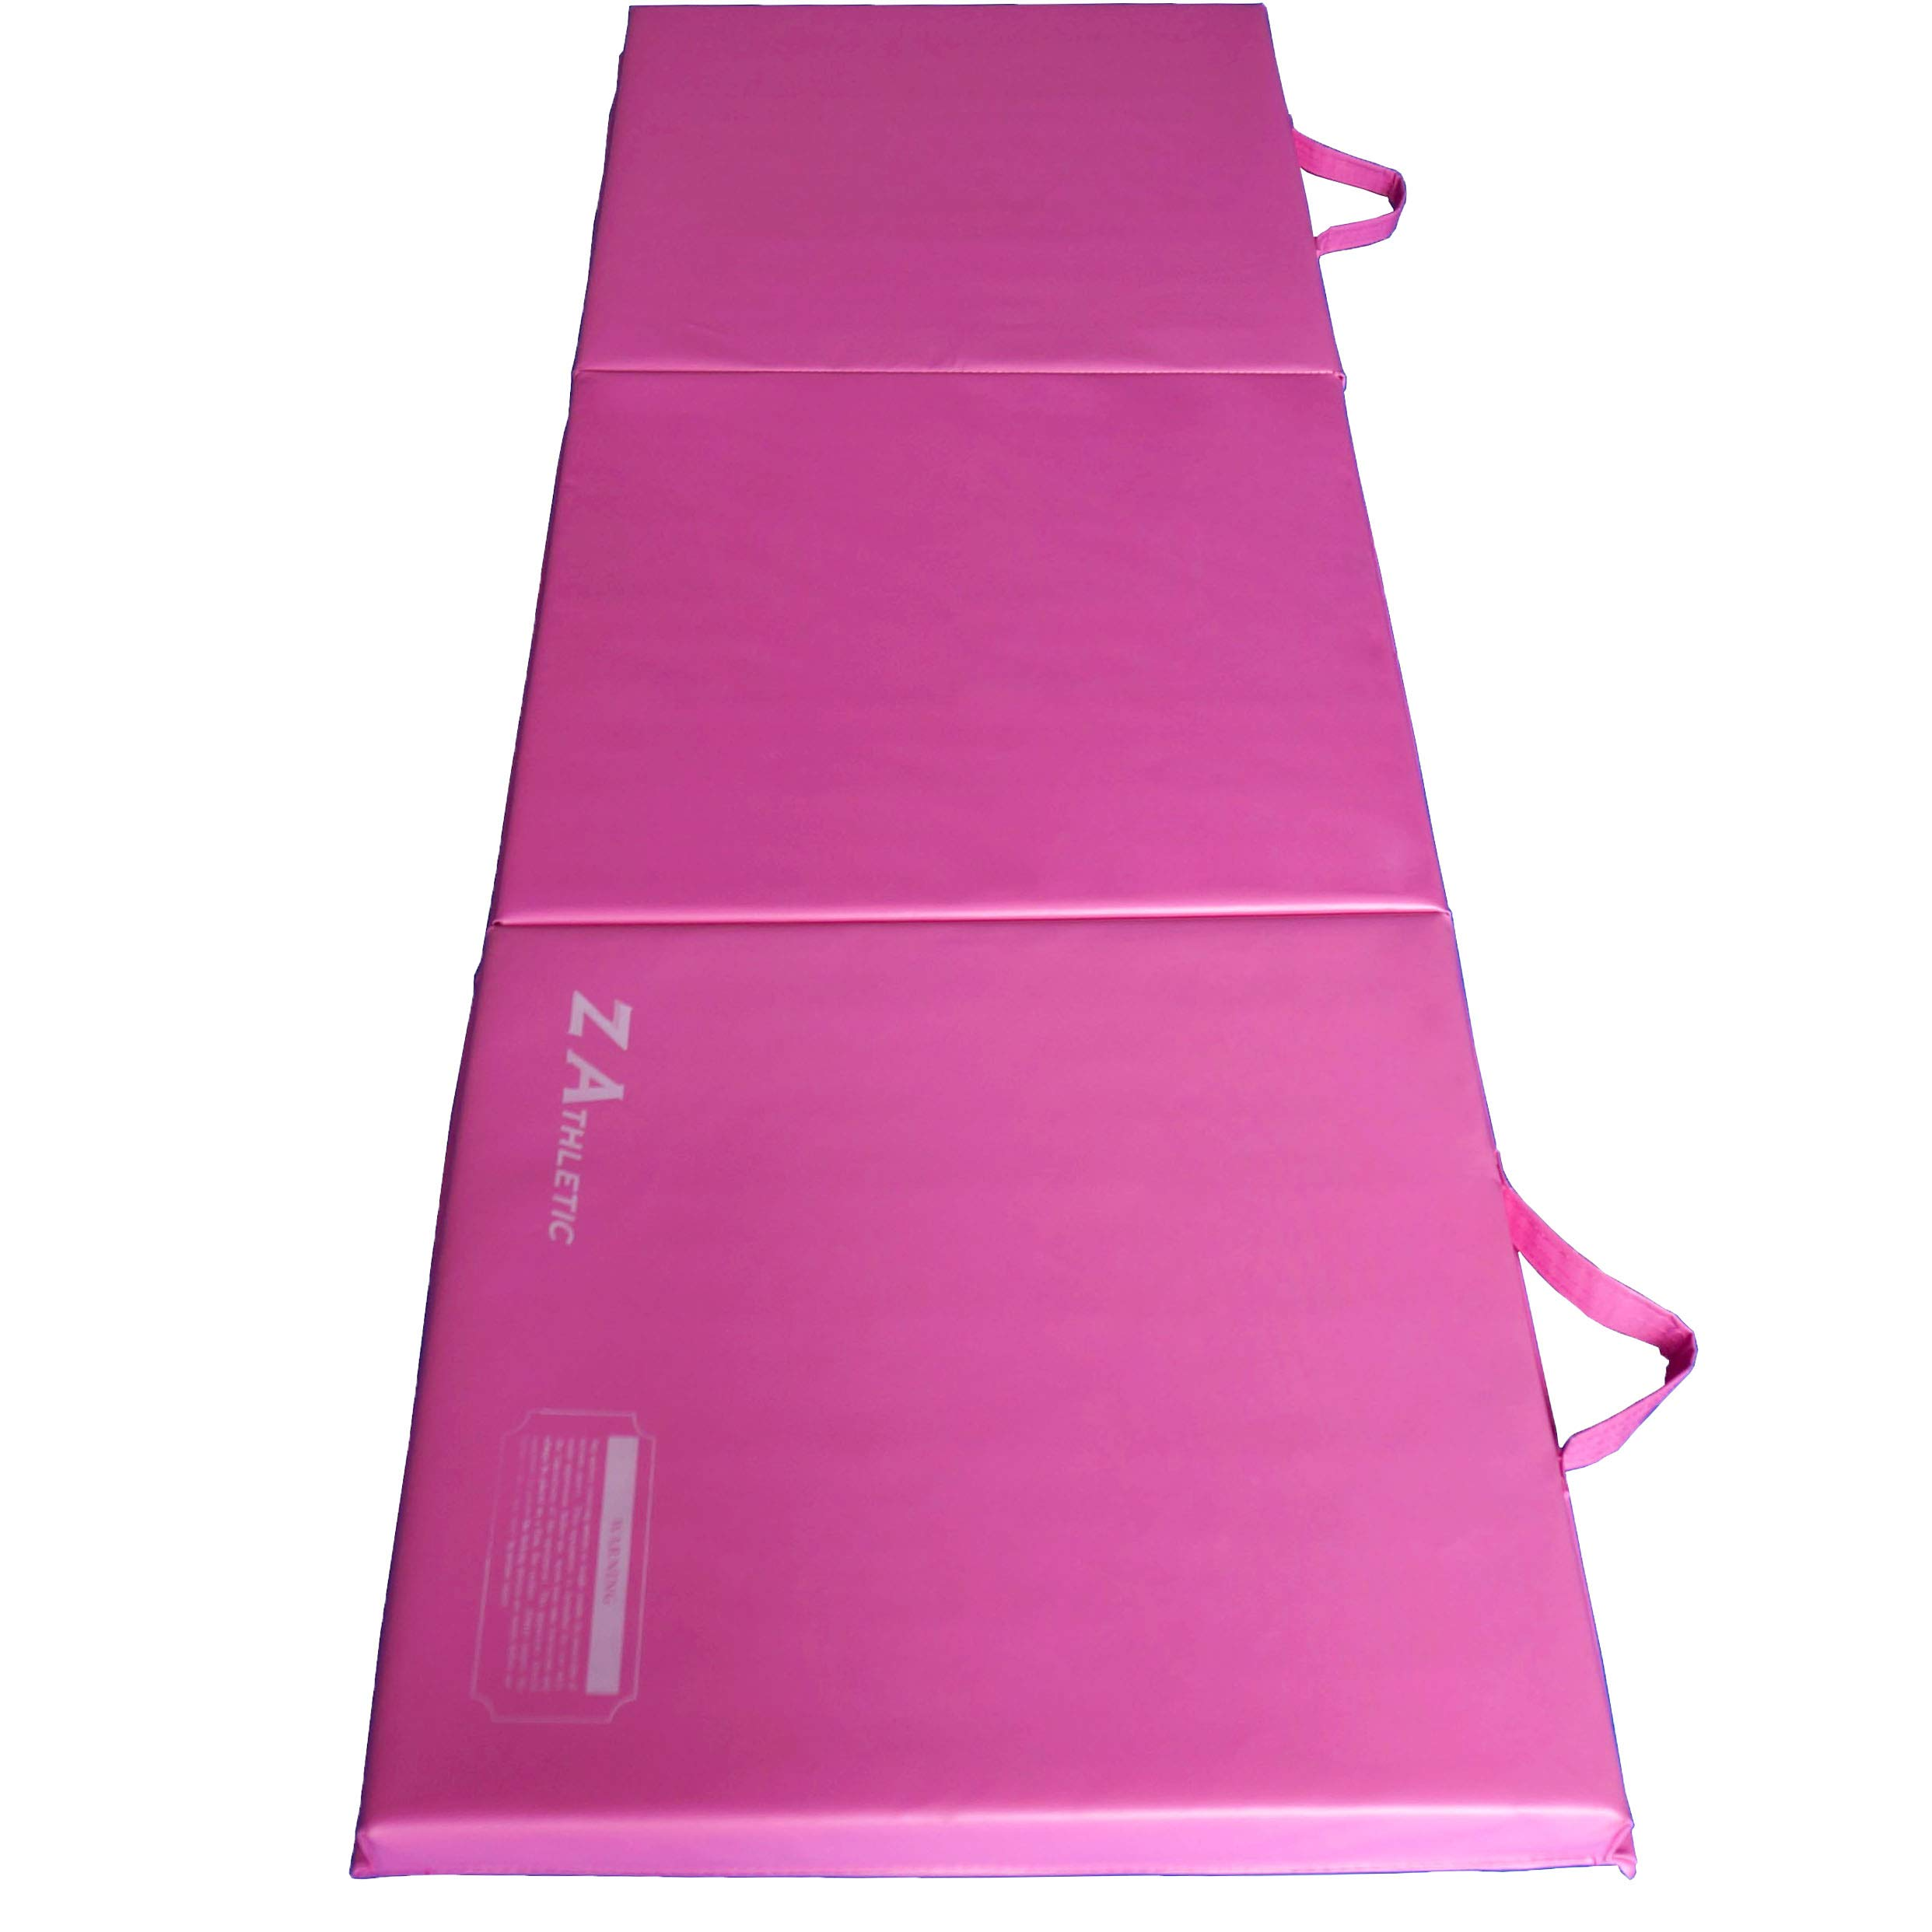 Z-Athletic Folding Panel Mats for Gymnastics, Yoga, Martial Arts, & Tumbling (2ft x 6ft x 2in, Pink)